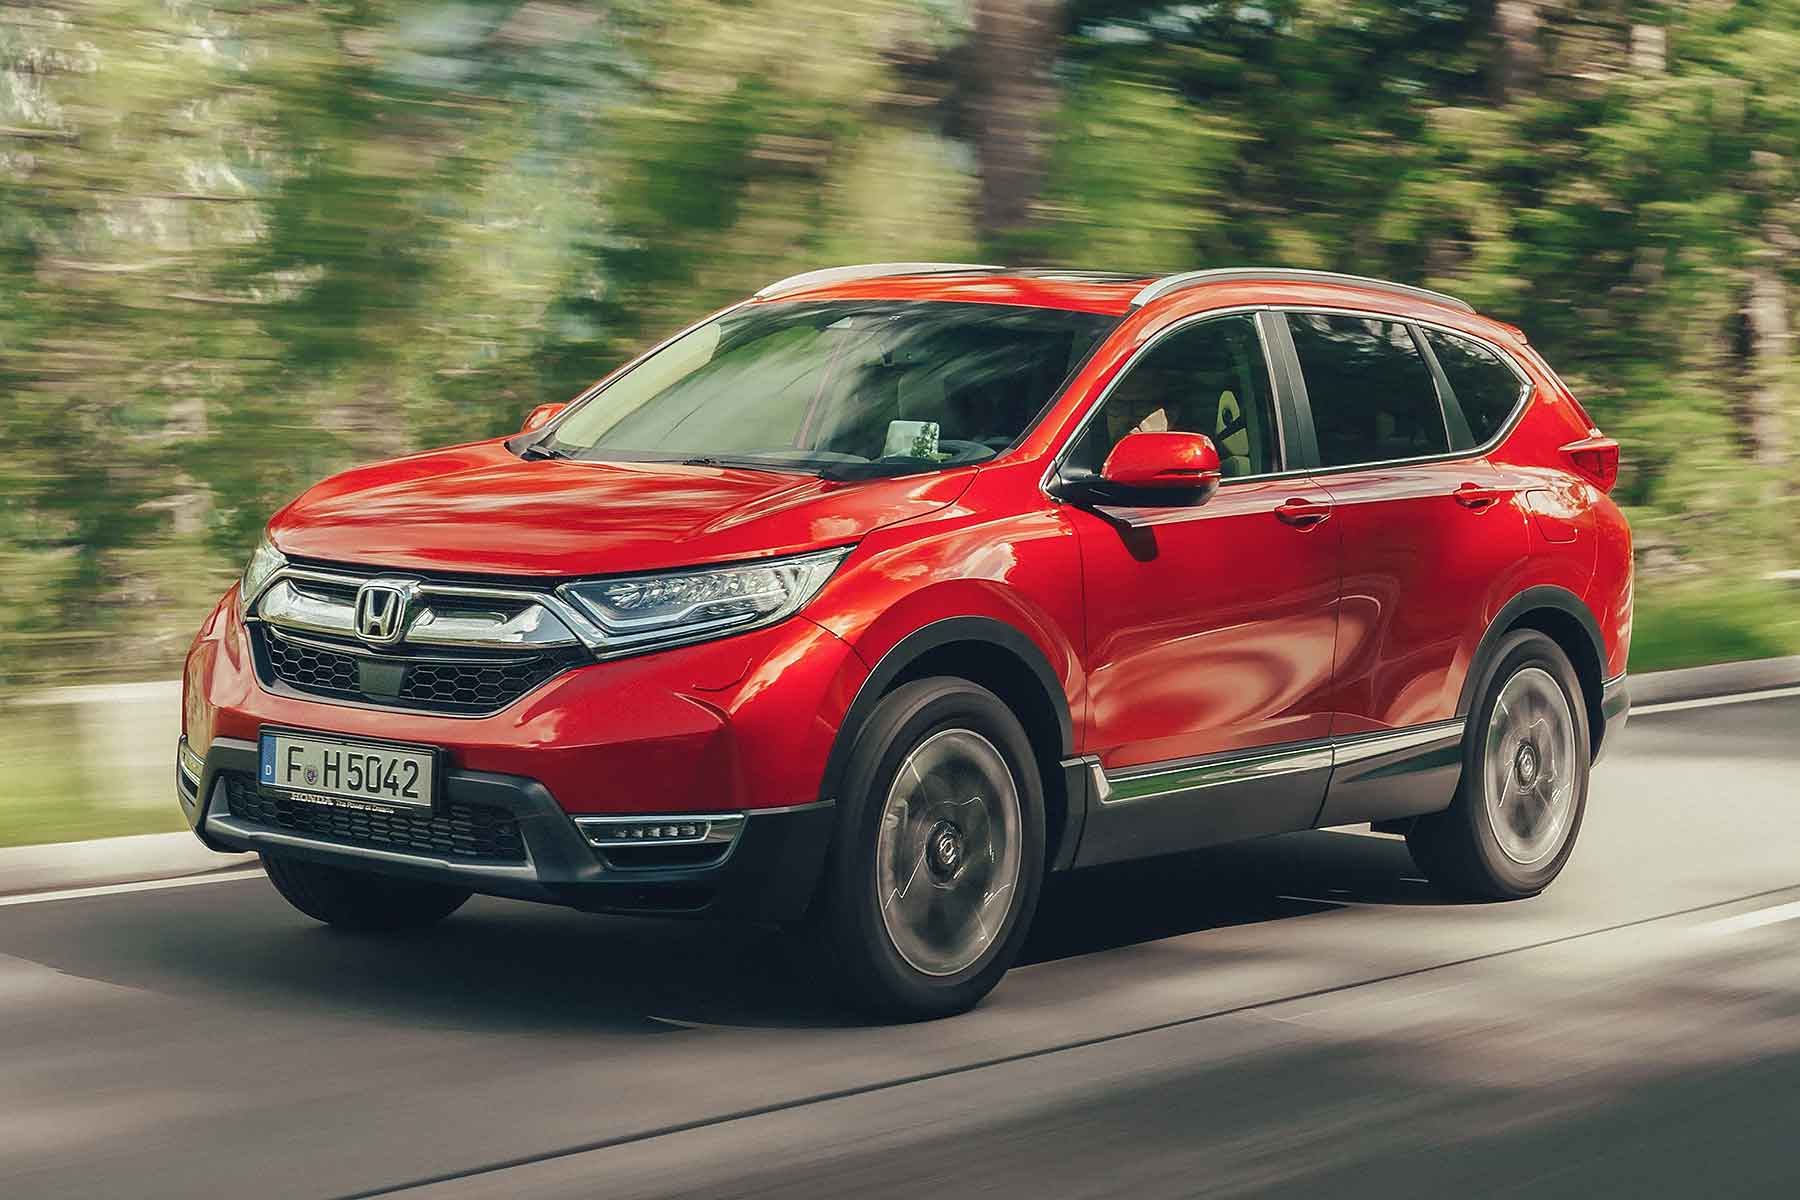 New Honda Cr V Prices From 25 995 Or 279 A Month Motoring Research